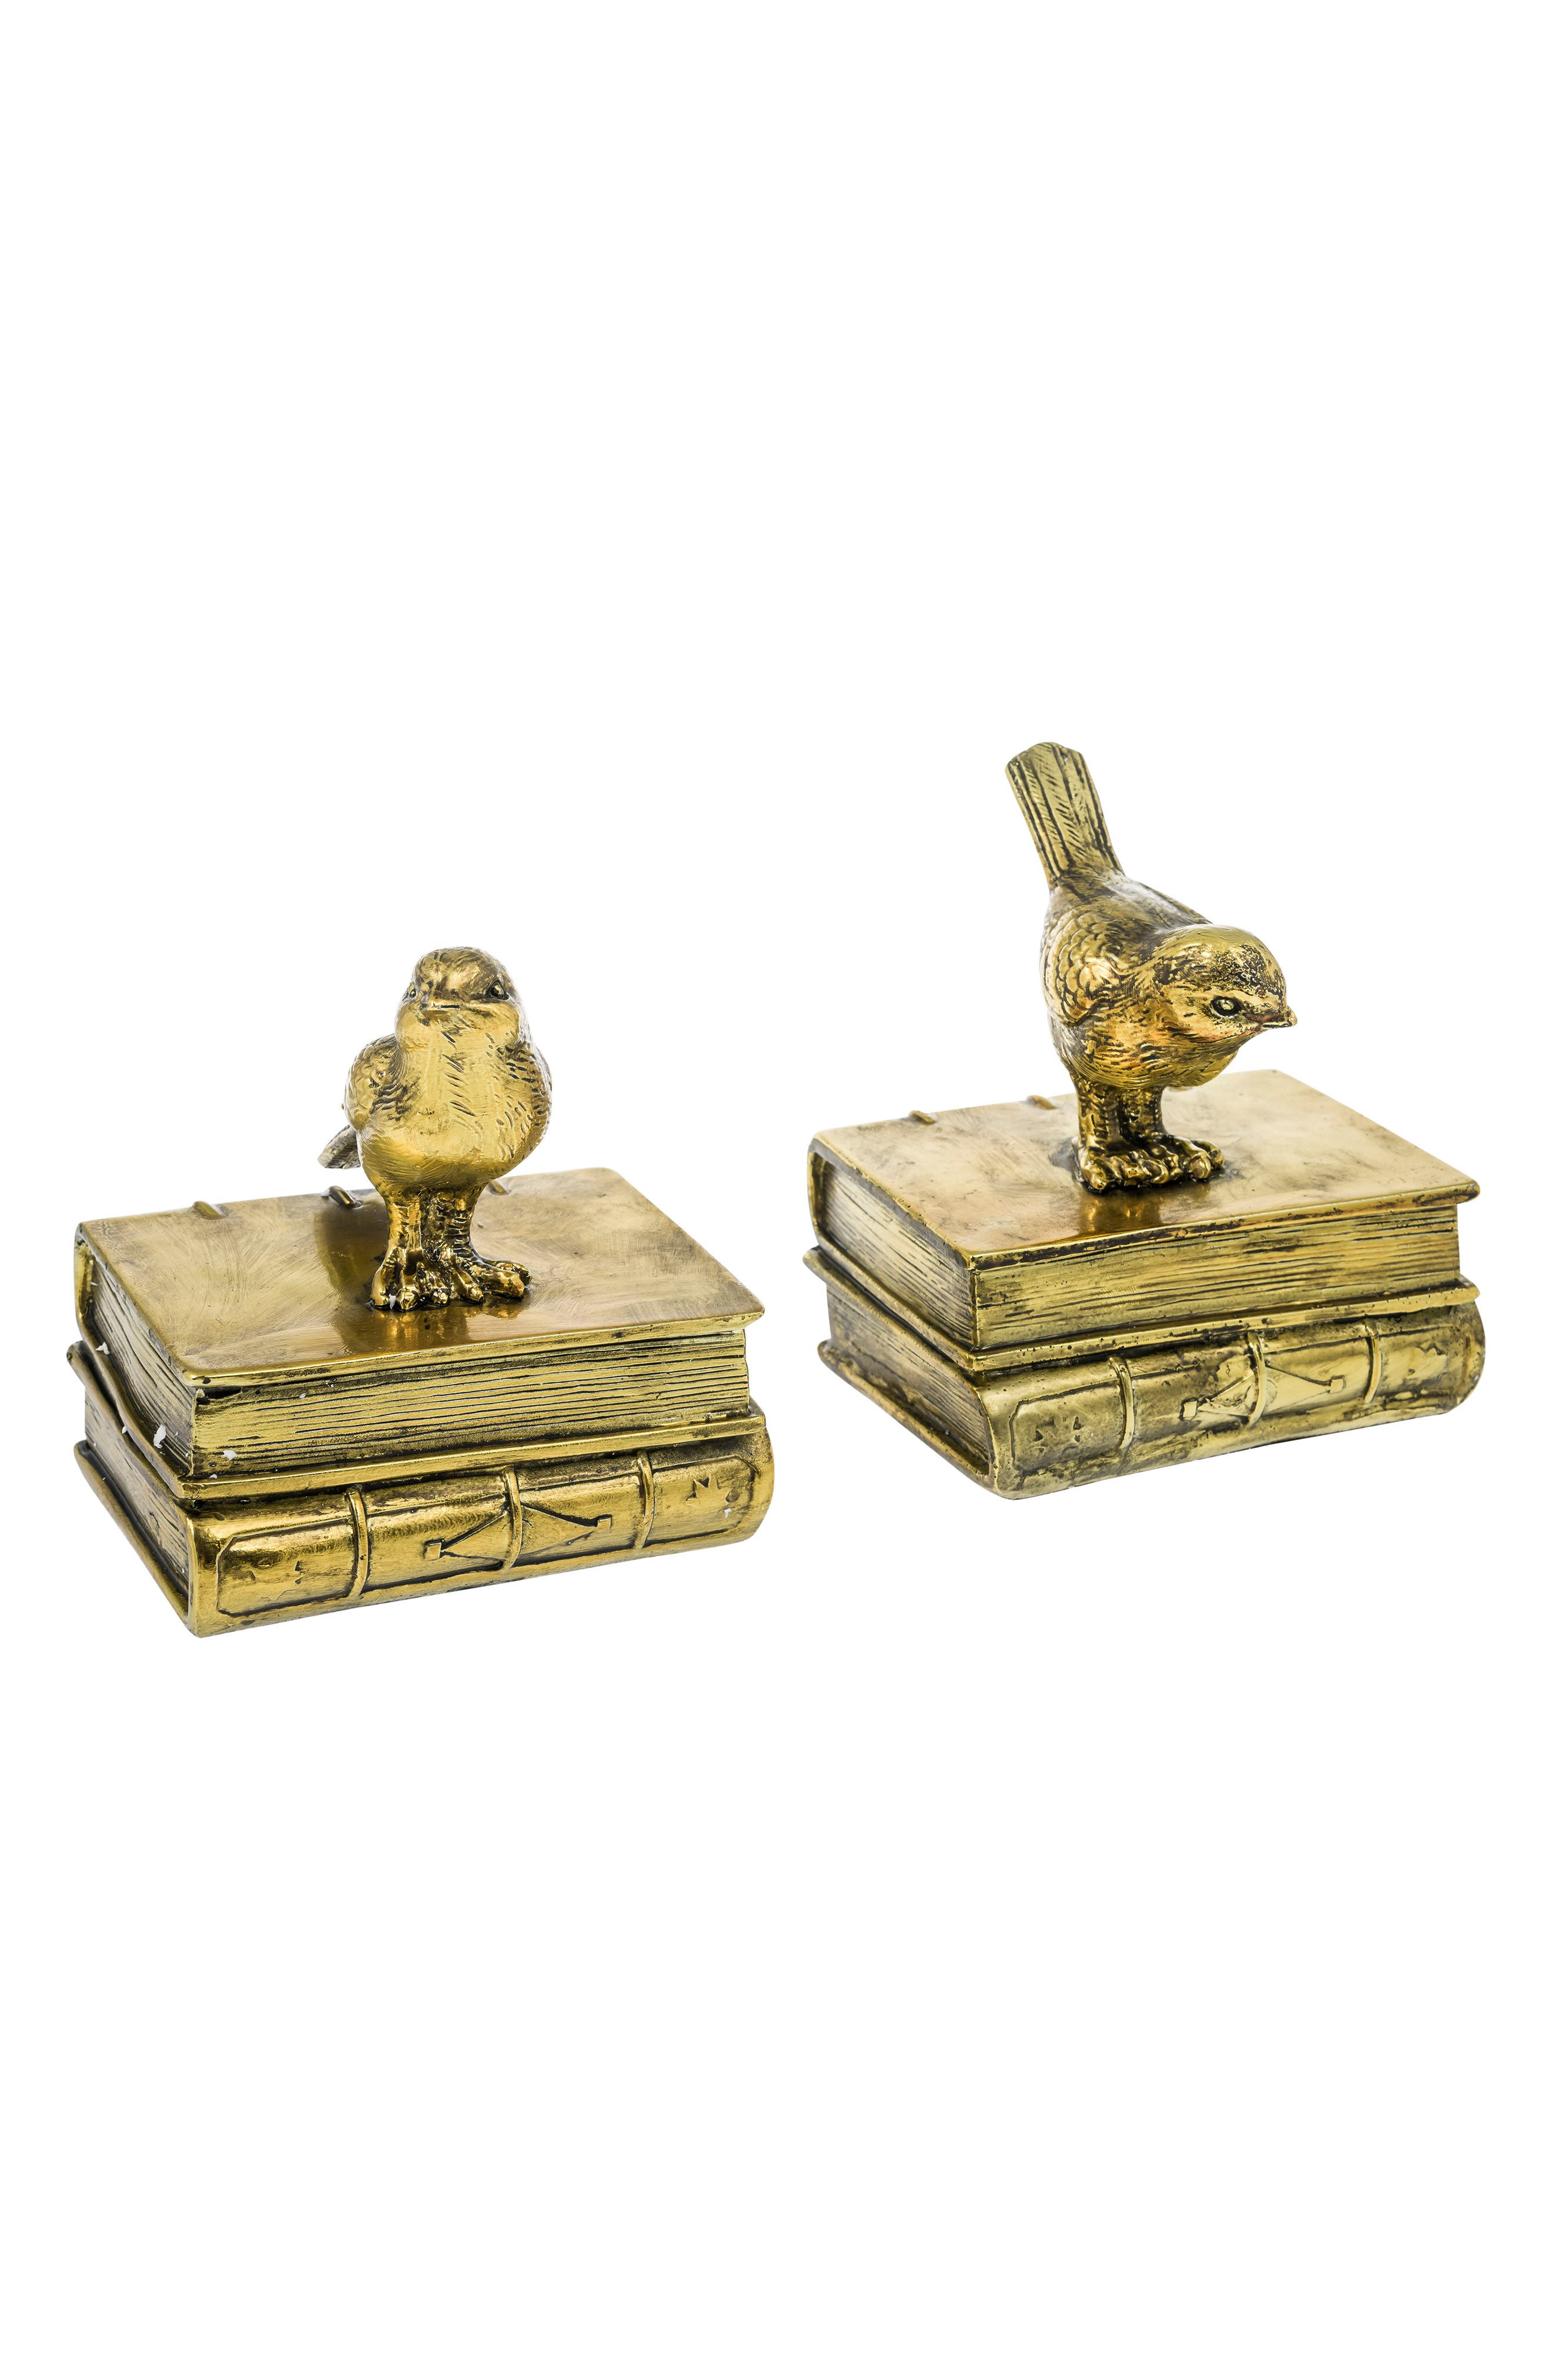 Main Image - Eightmood Deforest Set of 2 Bookends